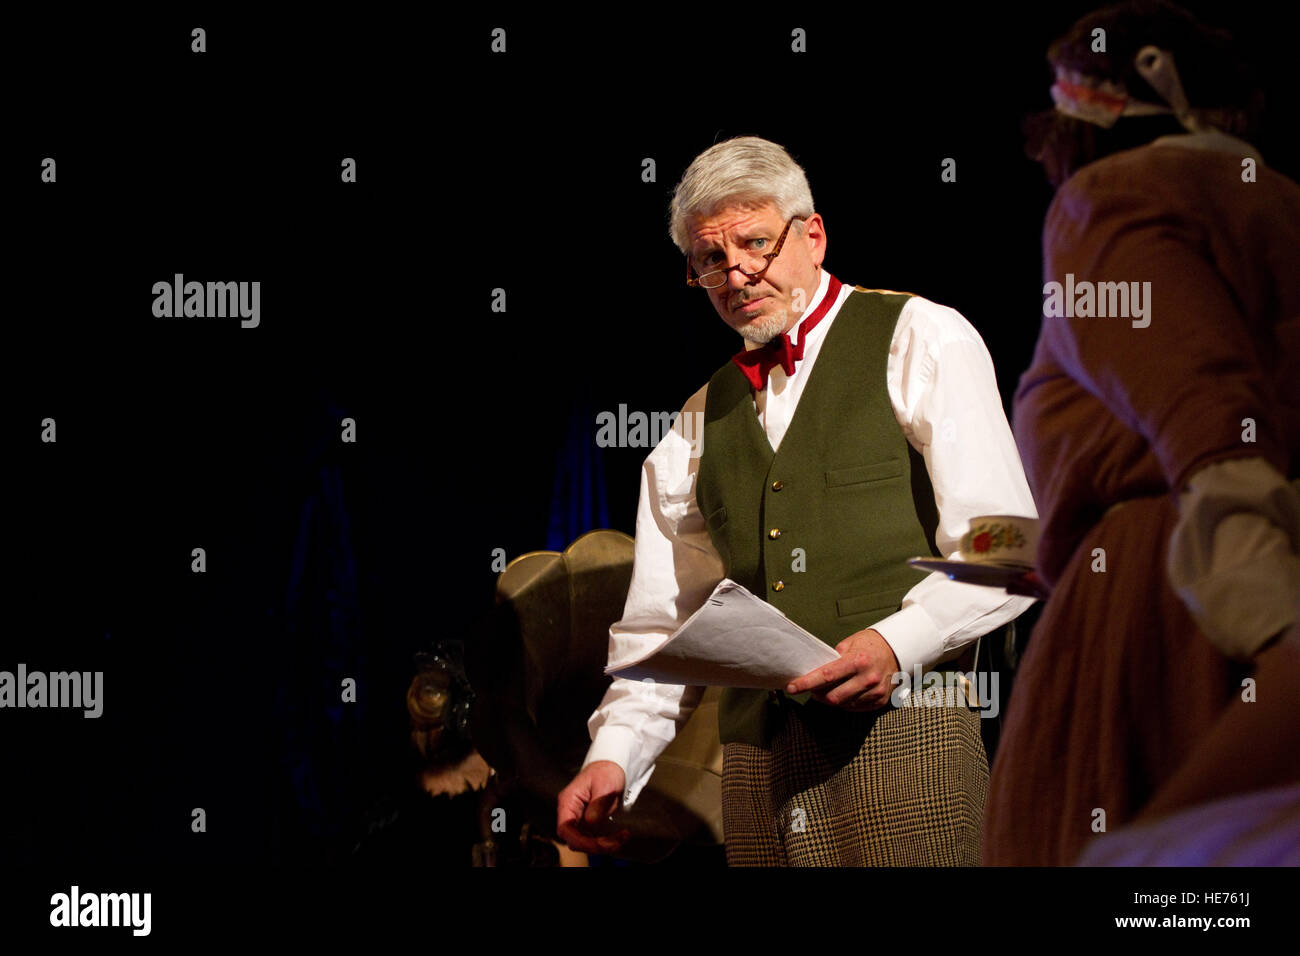 Geir Madland playing David in the comedy Hay Fever Stock Photo